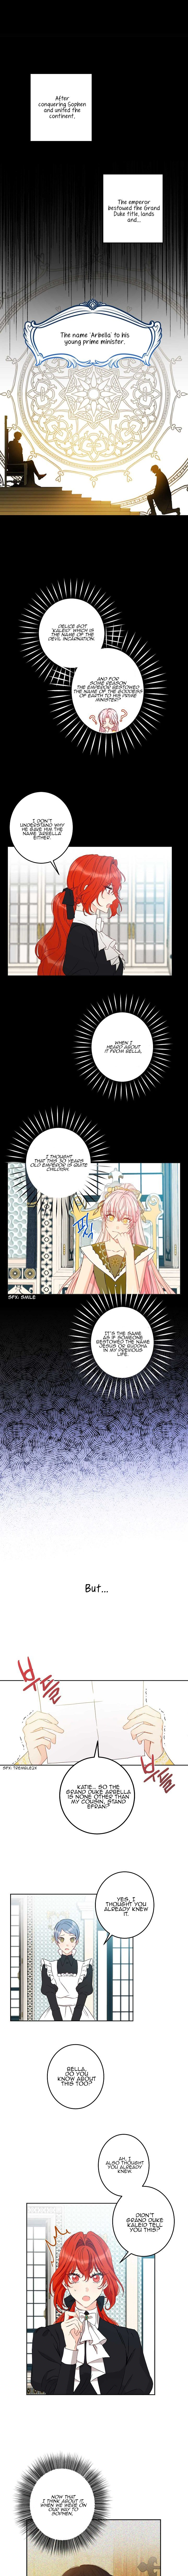 This Is An Obvious Fraudulent Marriage - chapter 49 - #1